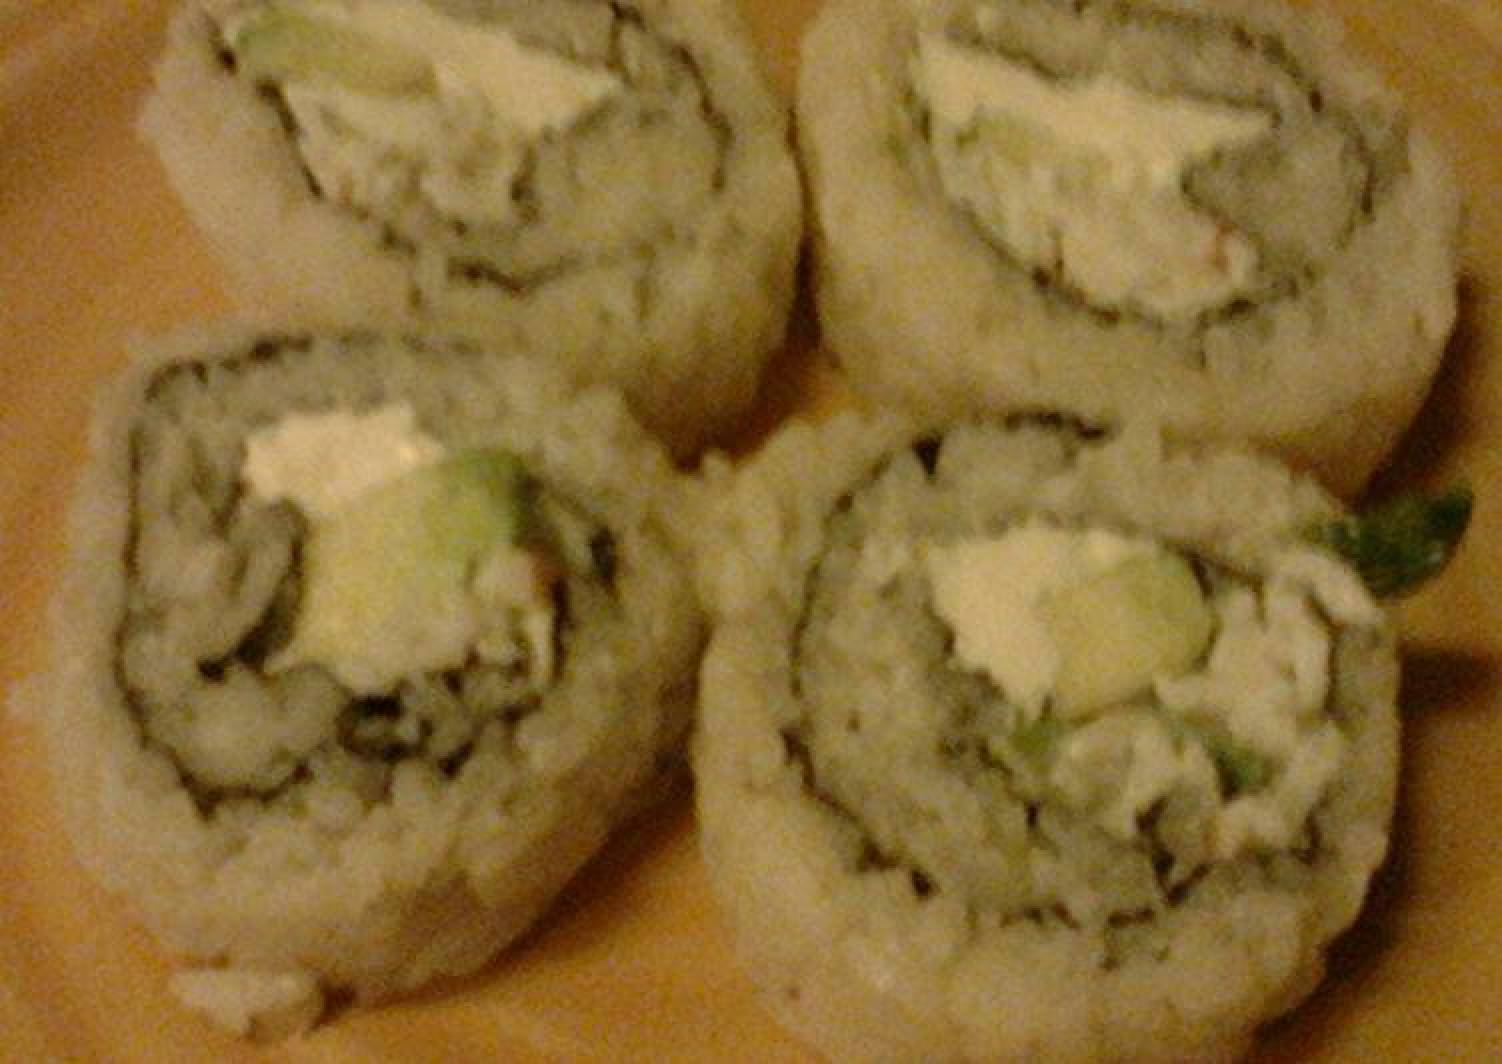 Sheree's Homemade Sushi